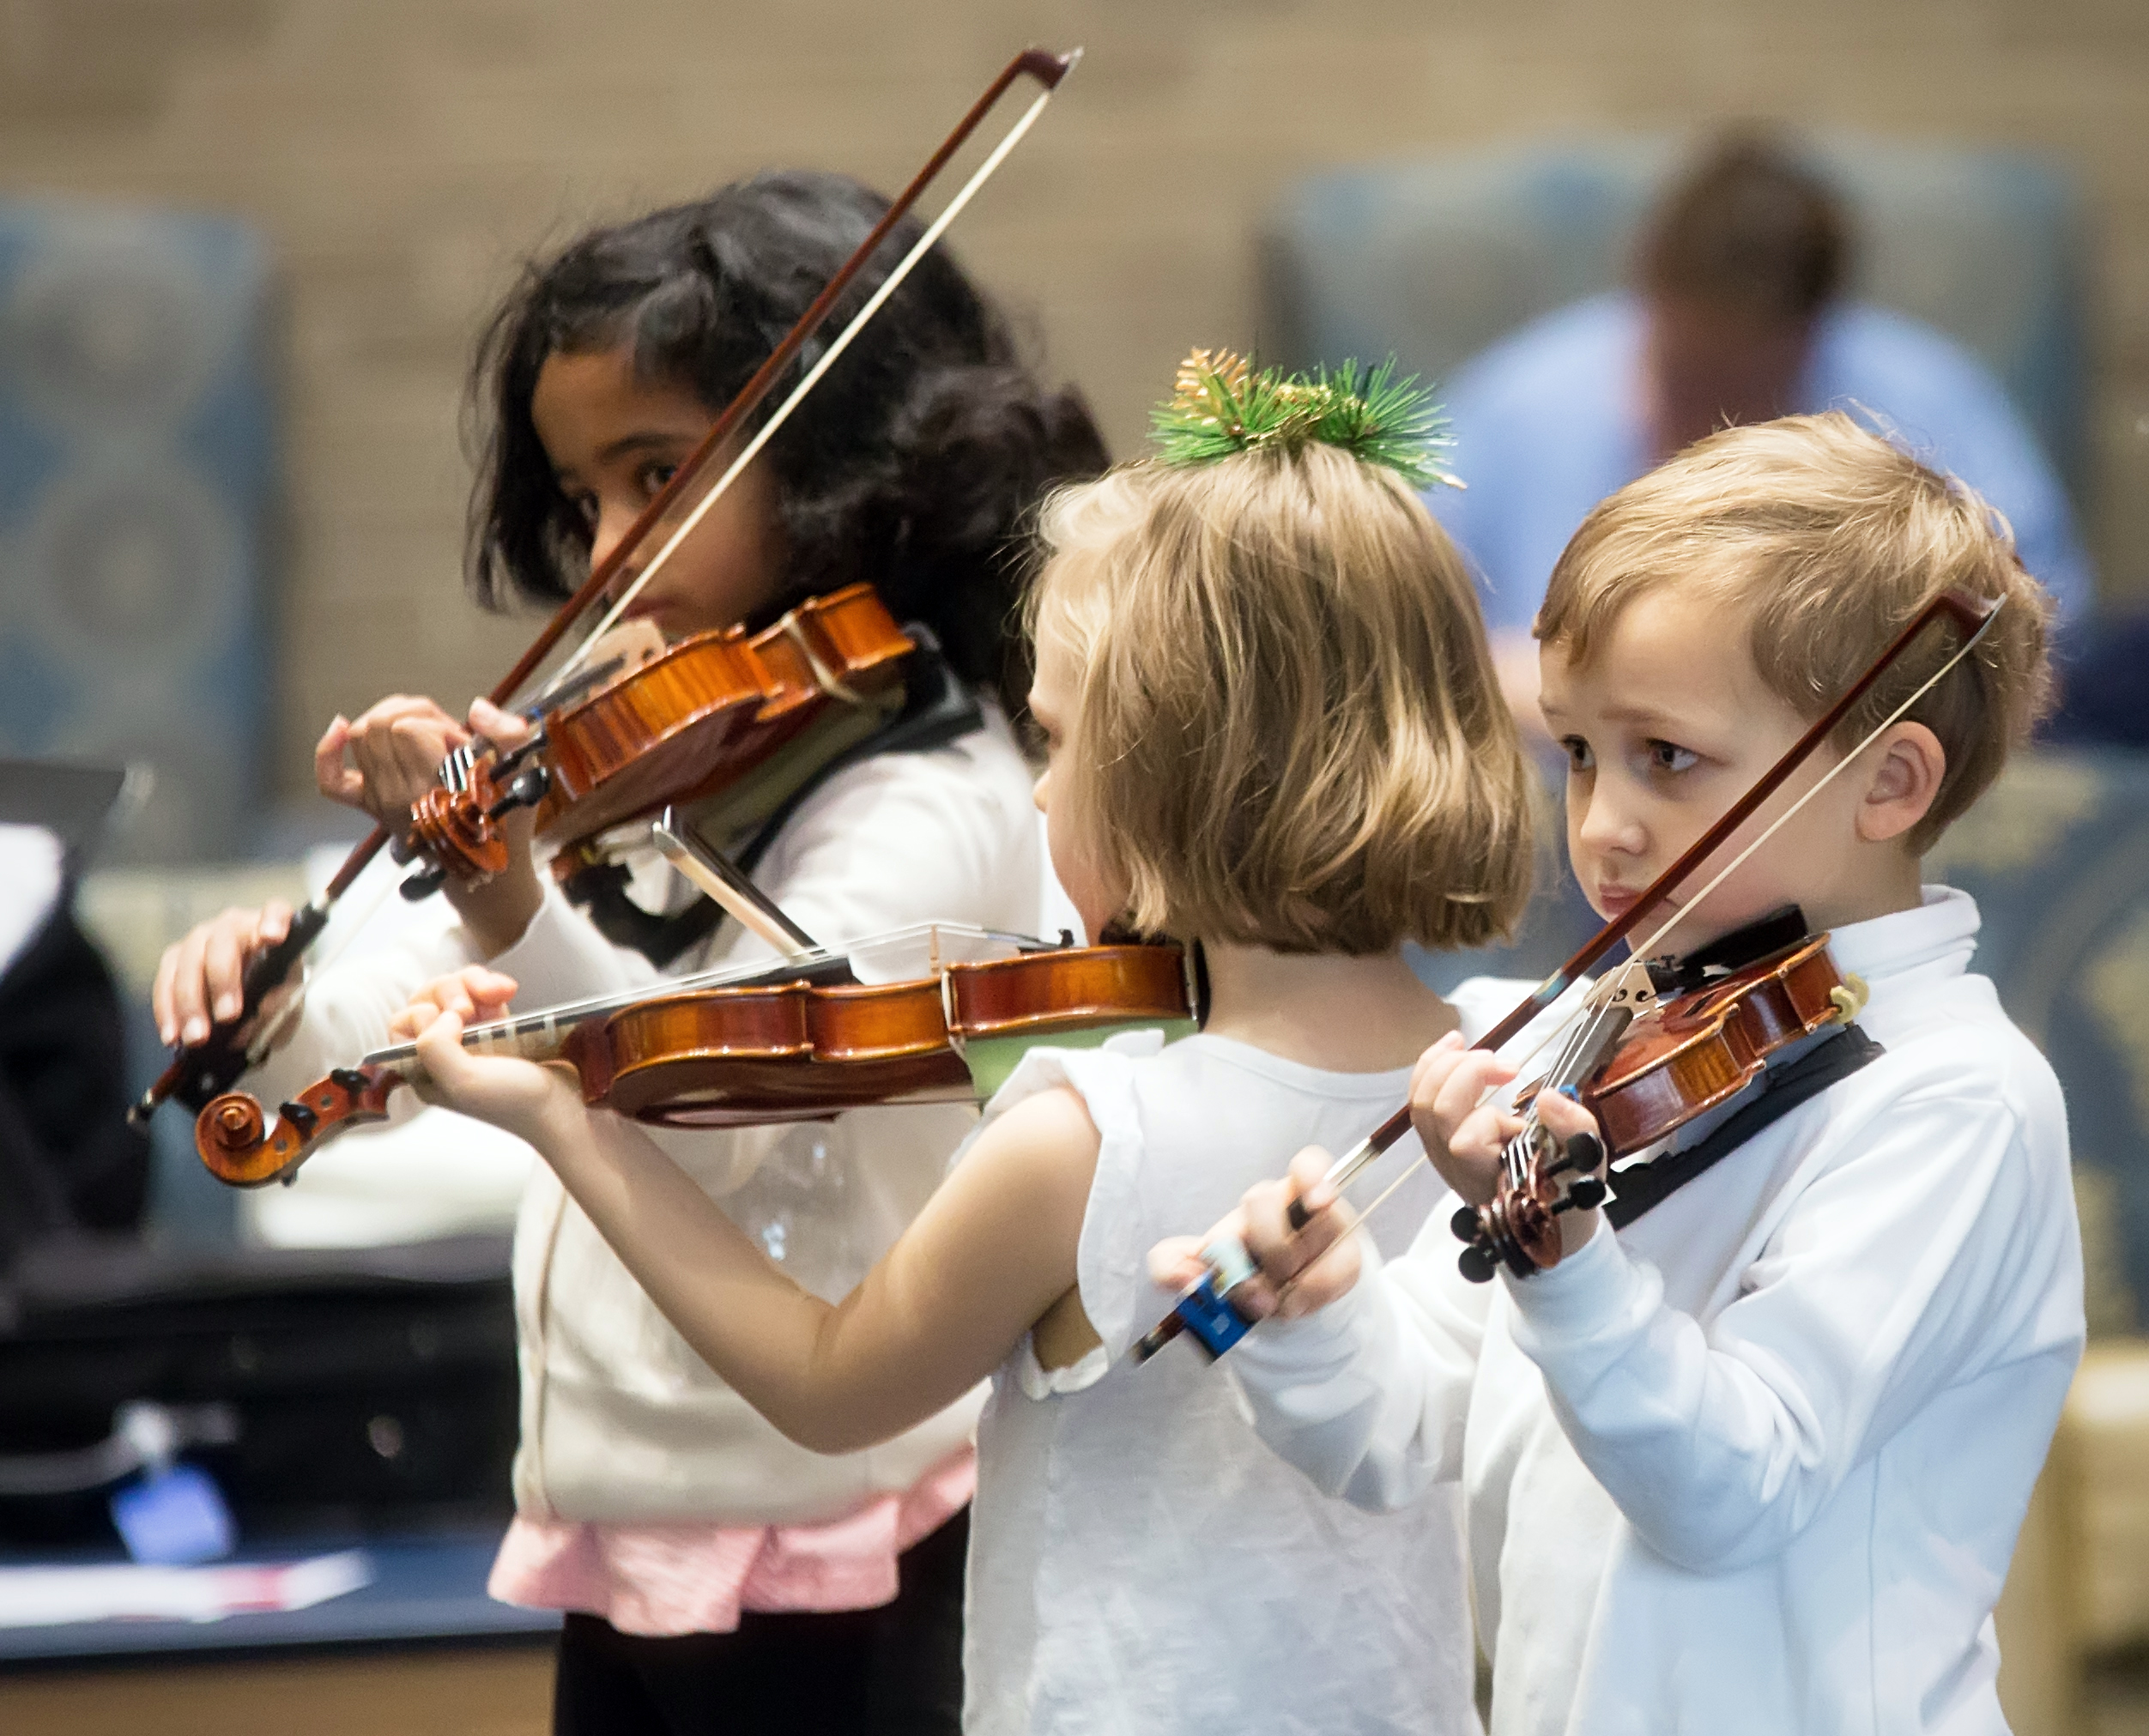 Violins of the Season' performance coming to Michigan Medicine